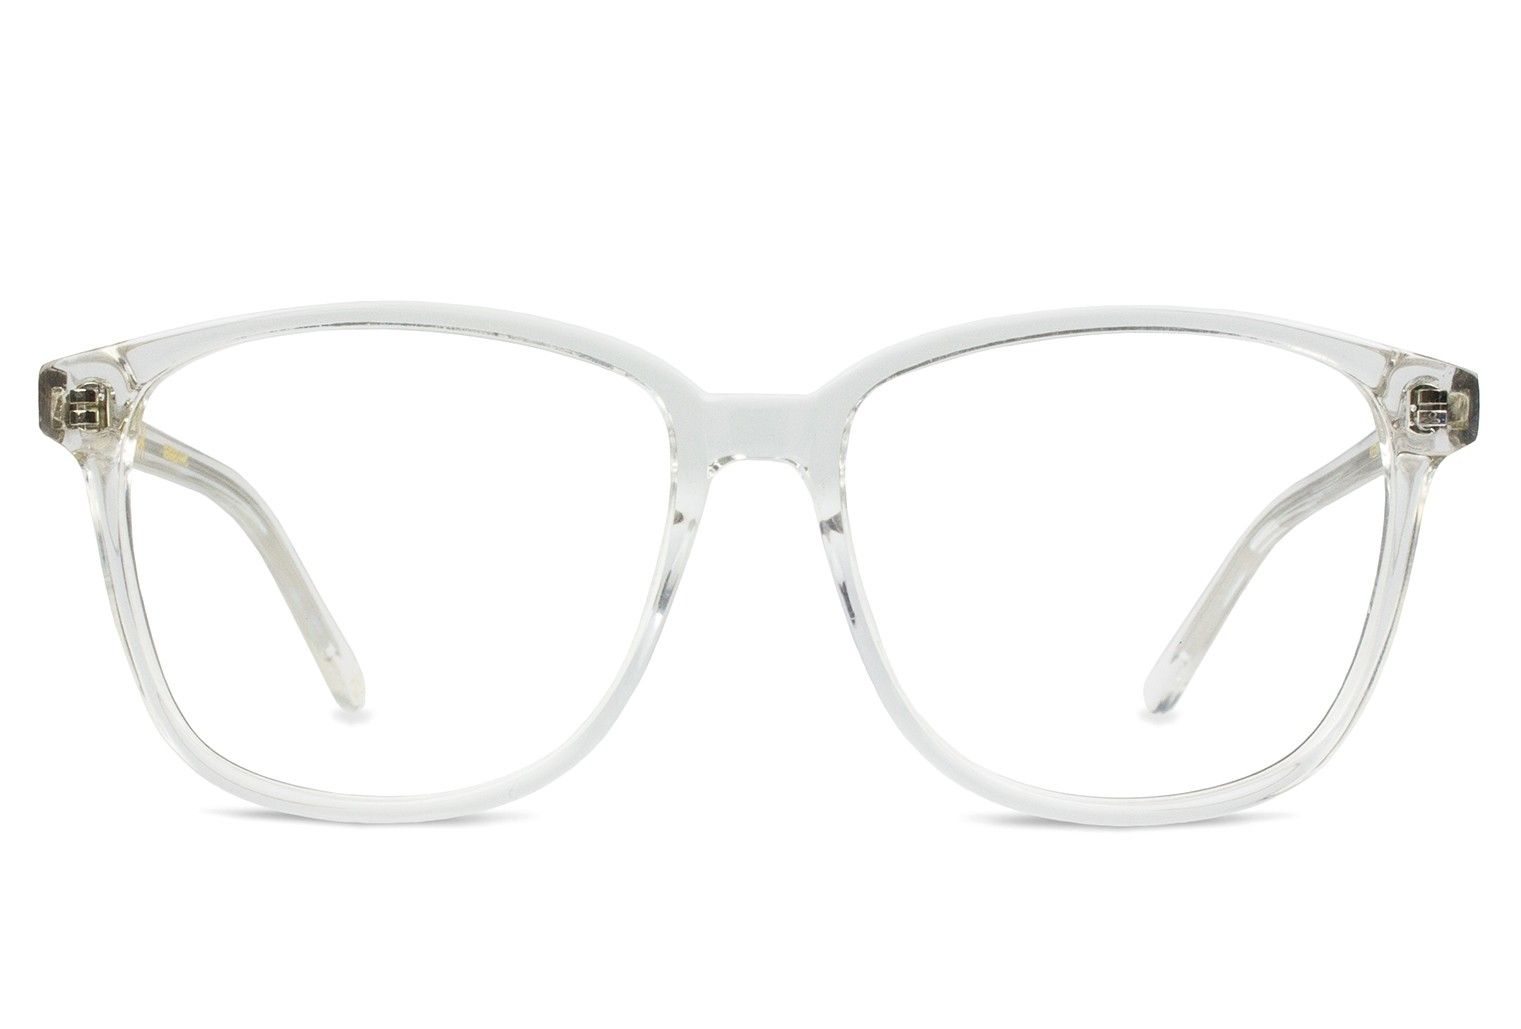 55a3a36c2f KEEN Square Eyeglasses - Vint   York Oversized Transparent Clear Acetate  Plastic 55-16